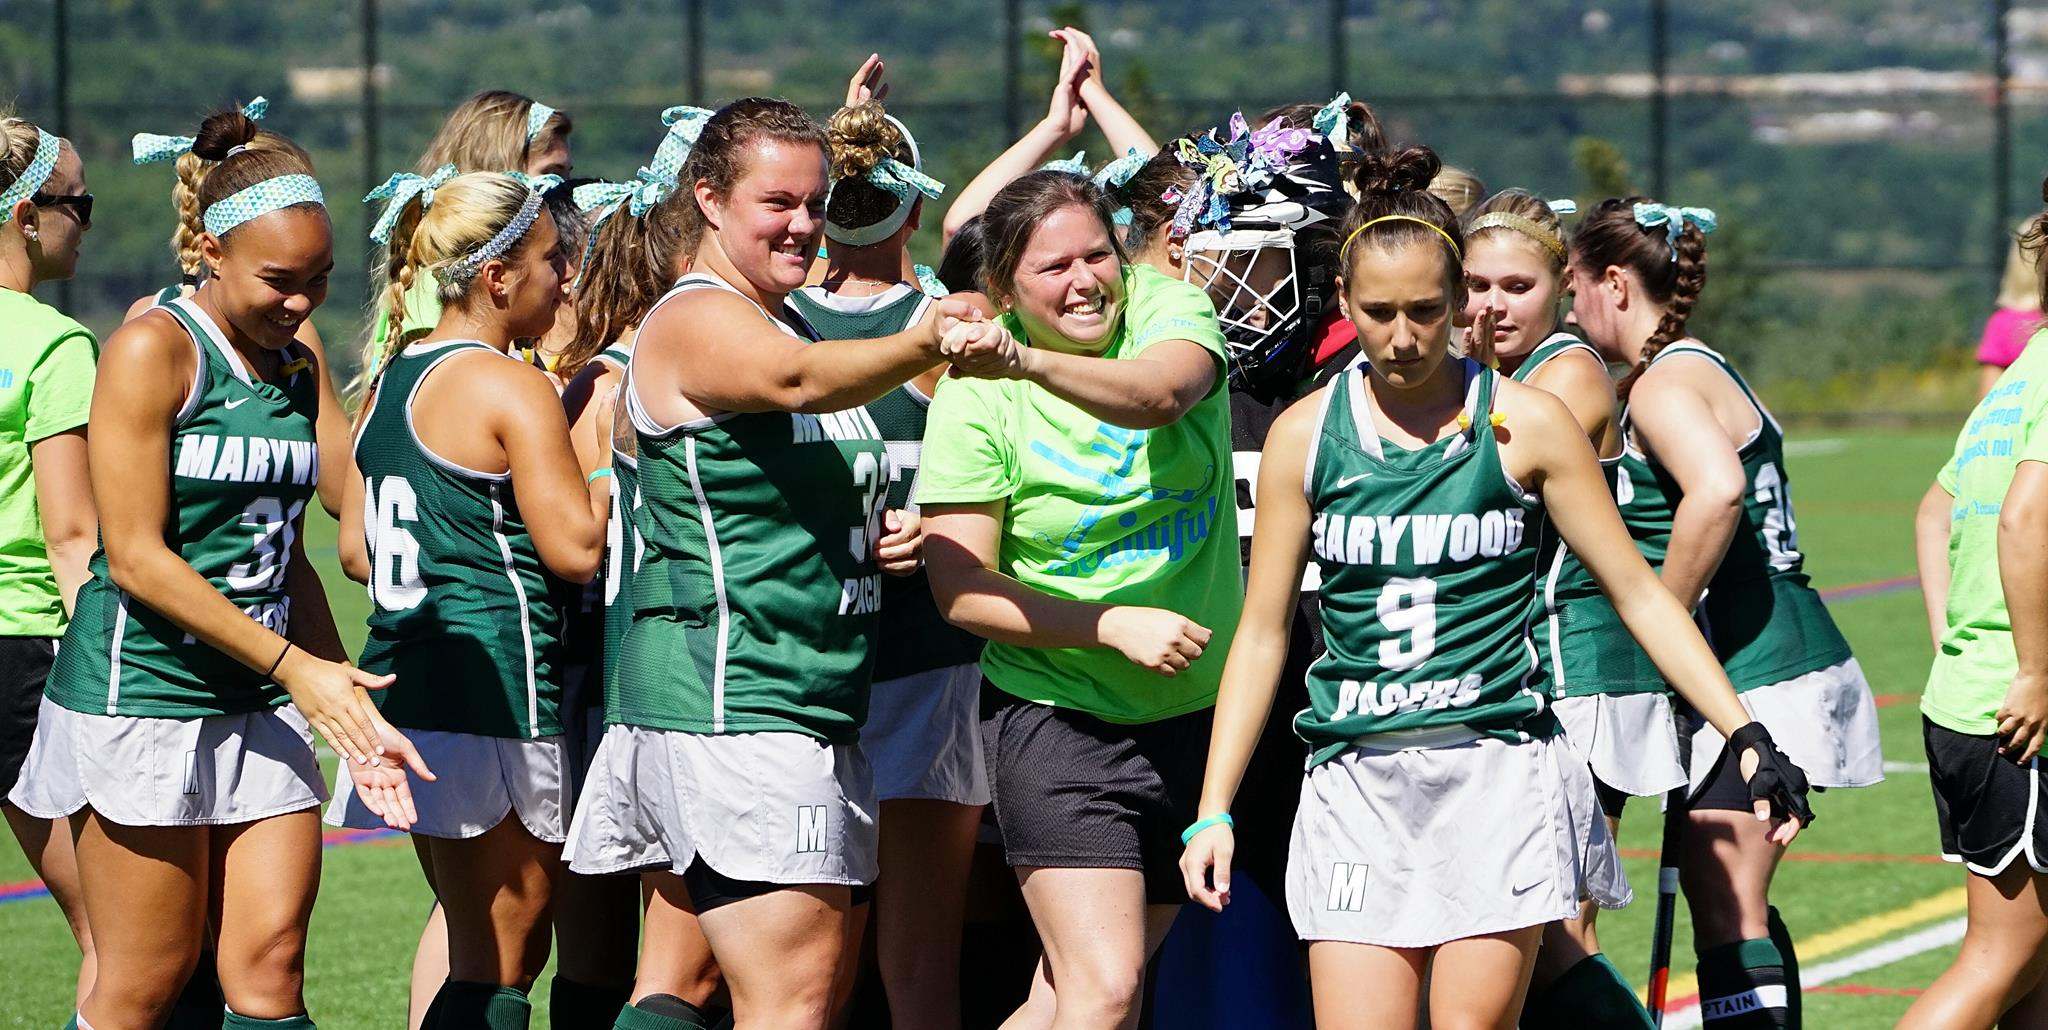 Photo courtesy of Marywood Athletics